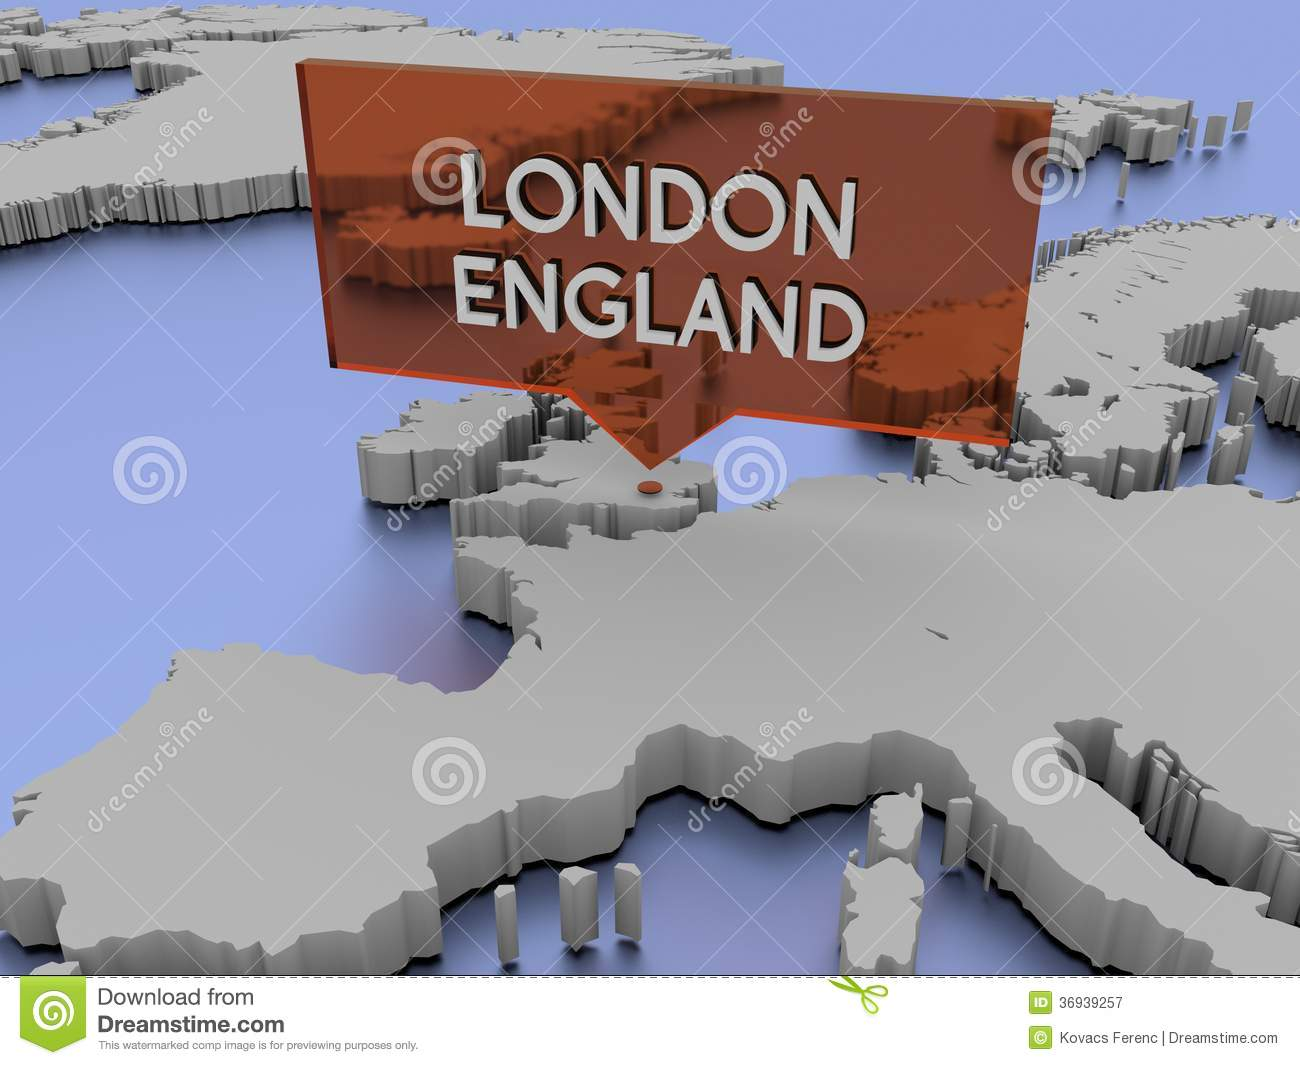 3d world map illustration london england stock image image 3d world map illustration london england gumiabroncs